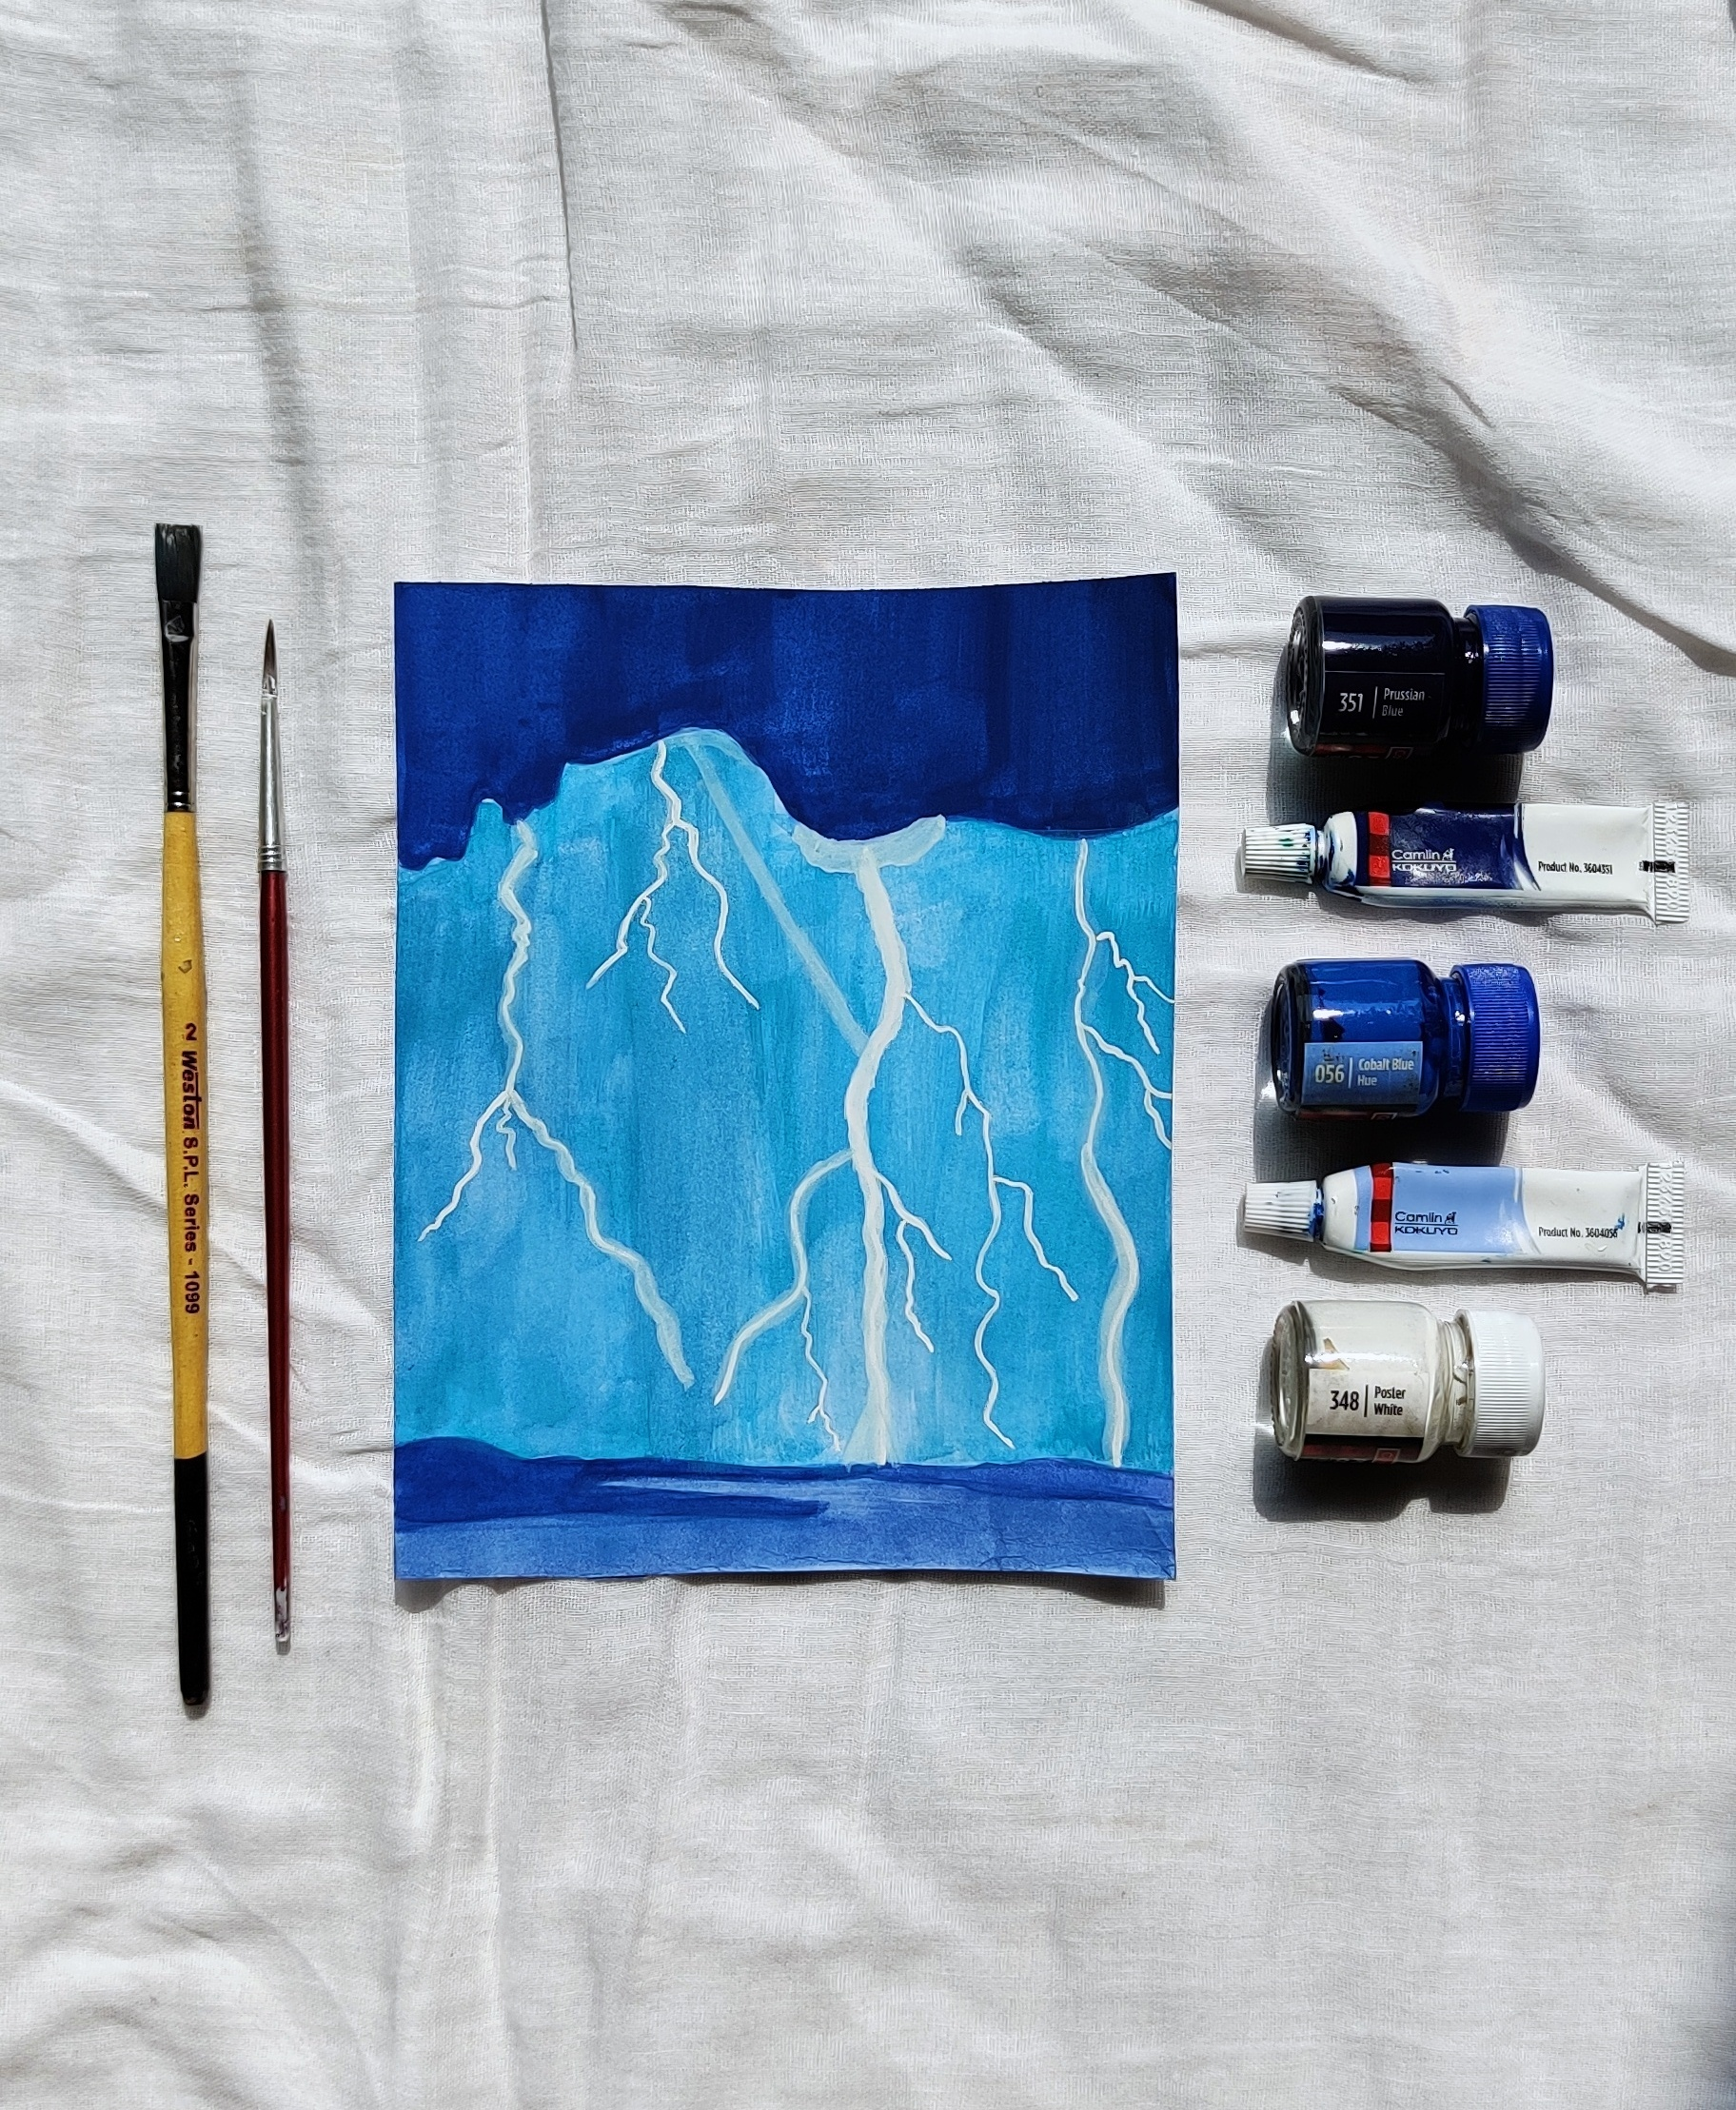 Watercolors and painting